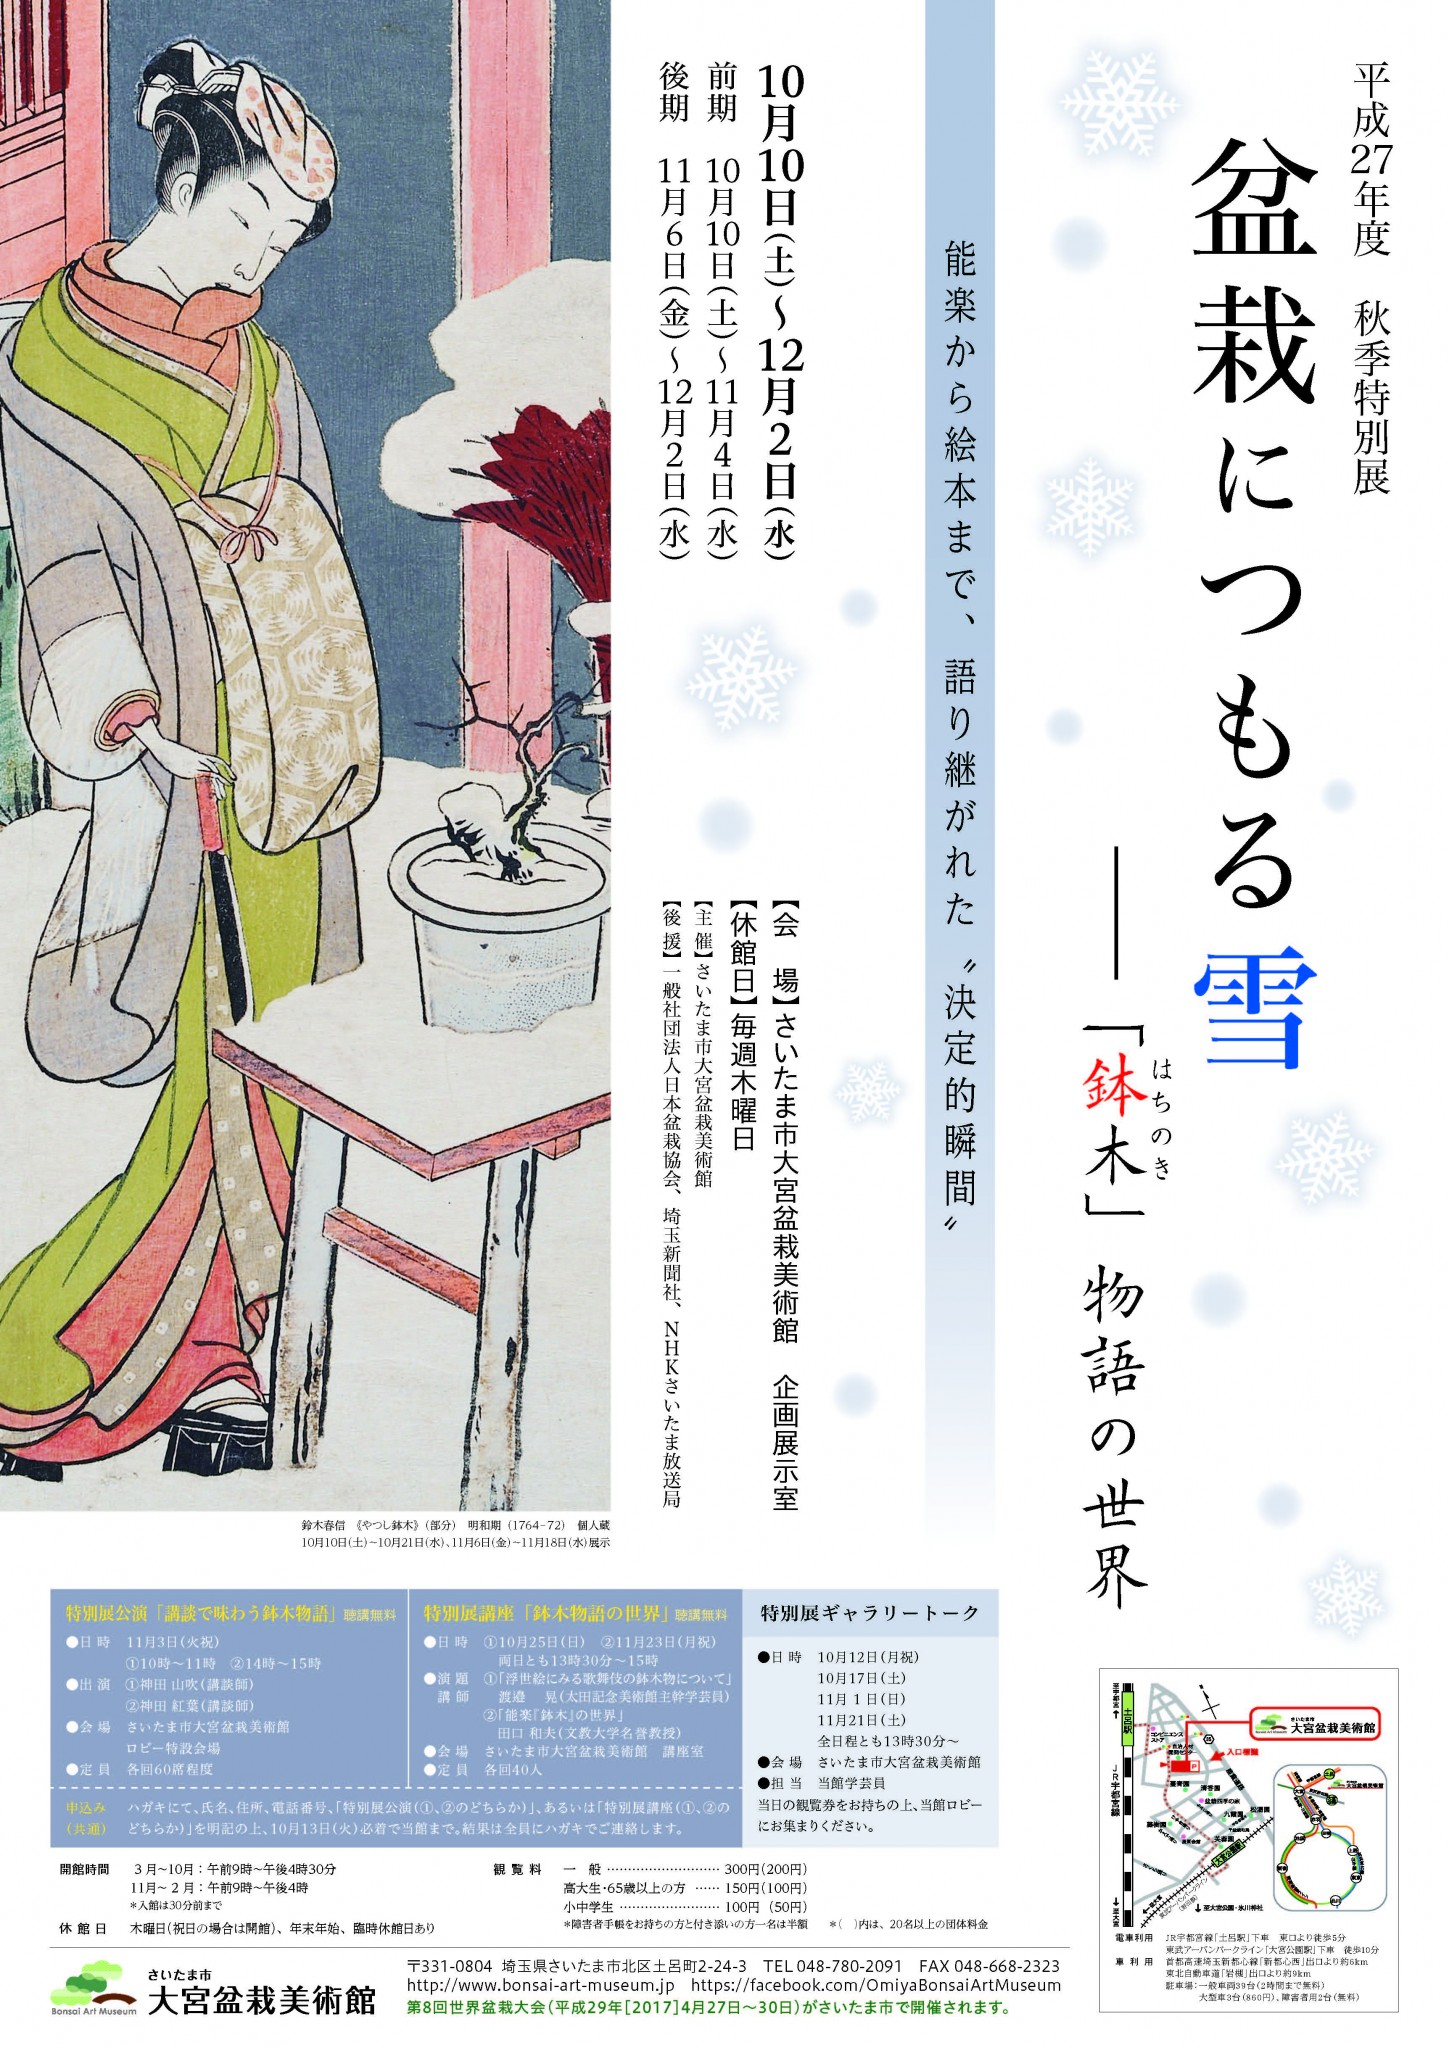 Special Exhibition: Bonsai in the Snow day, a Story of Hachi-no-ki